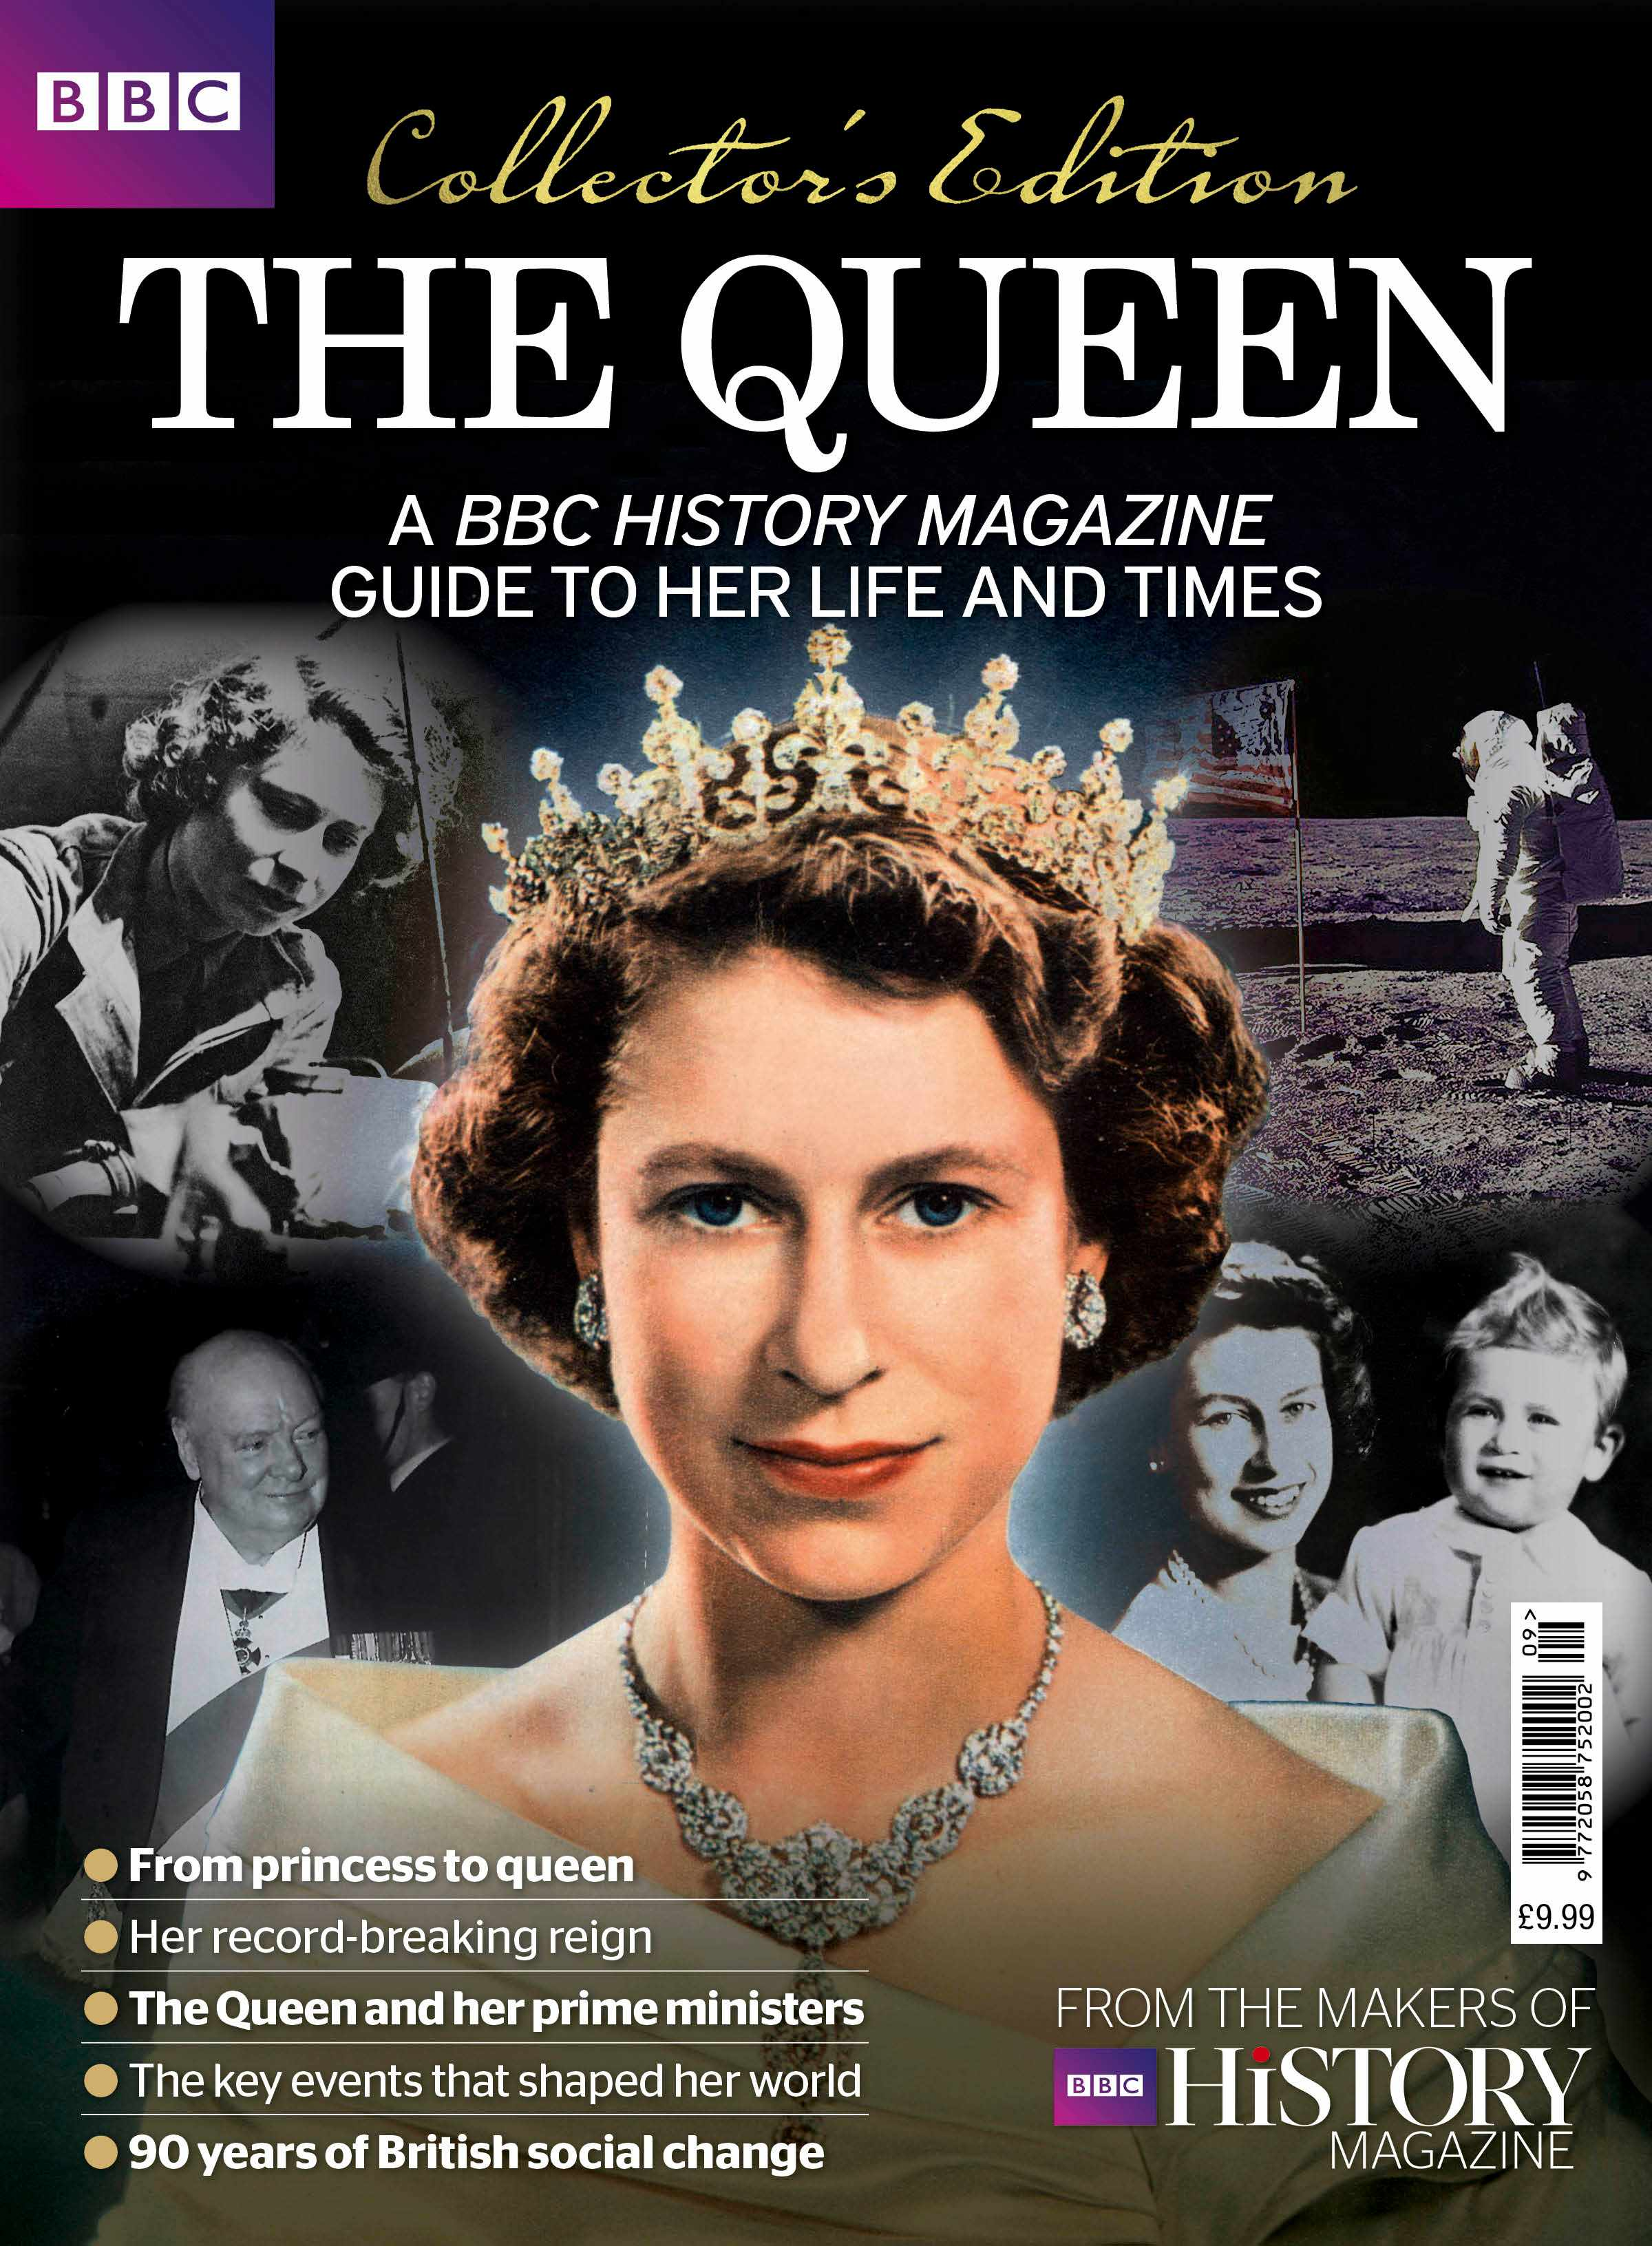 The Queen: A Guide to Her Life and Times